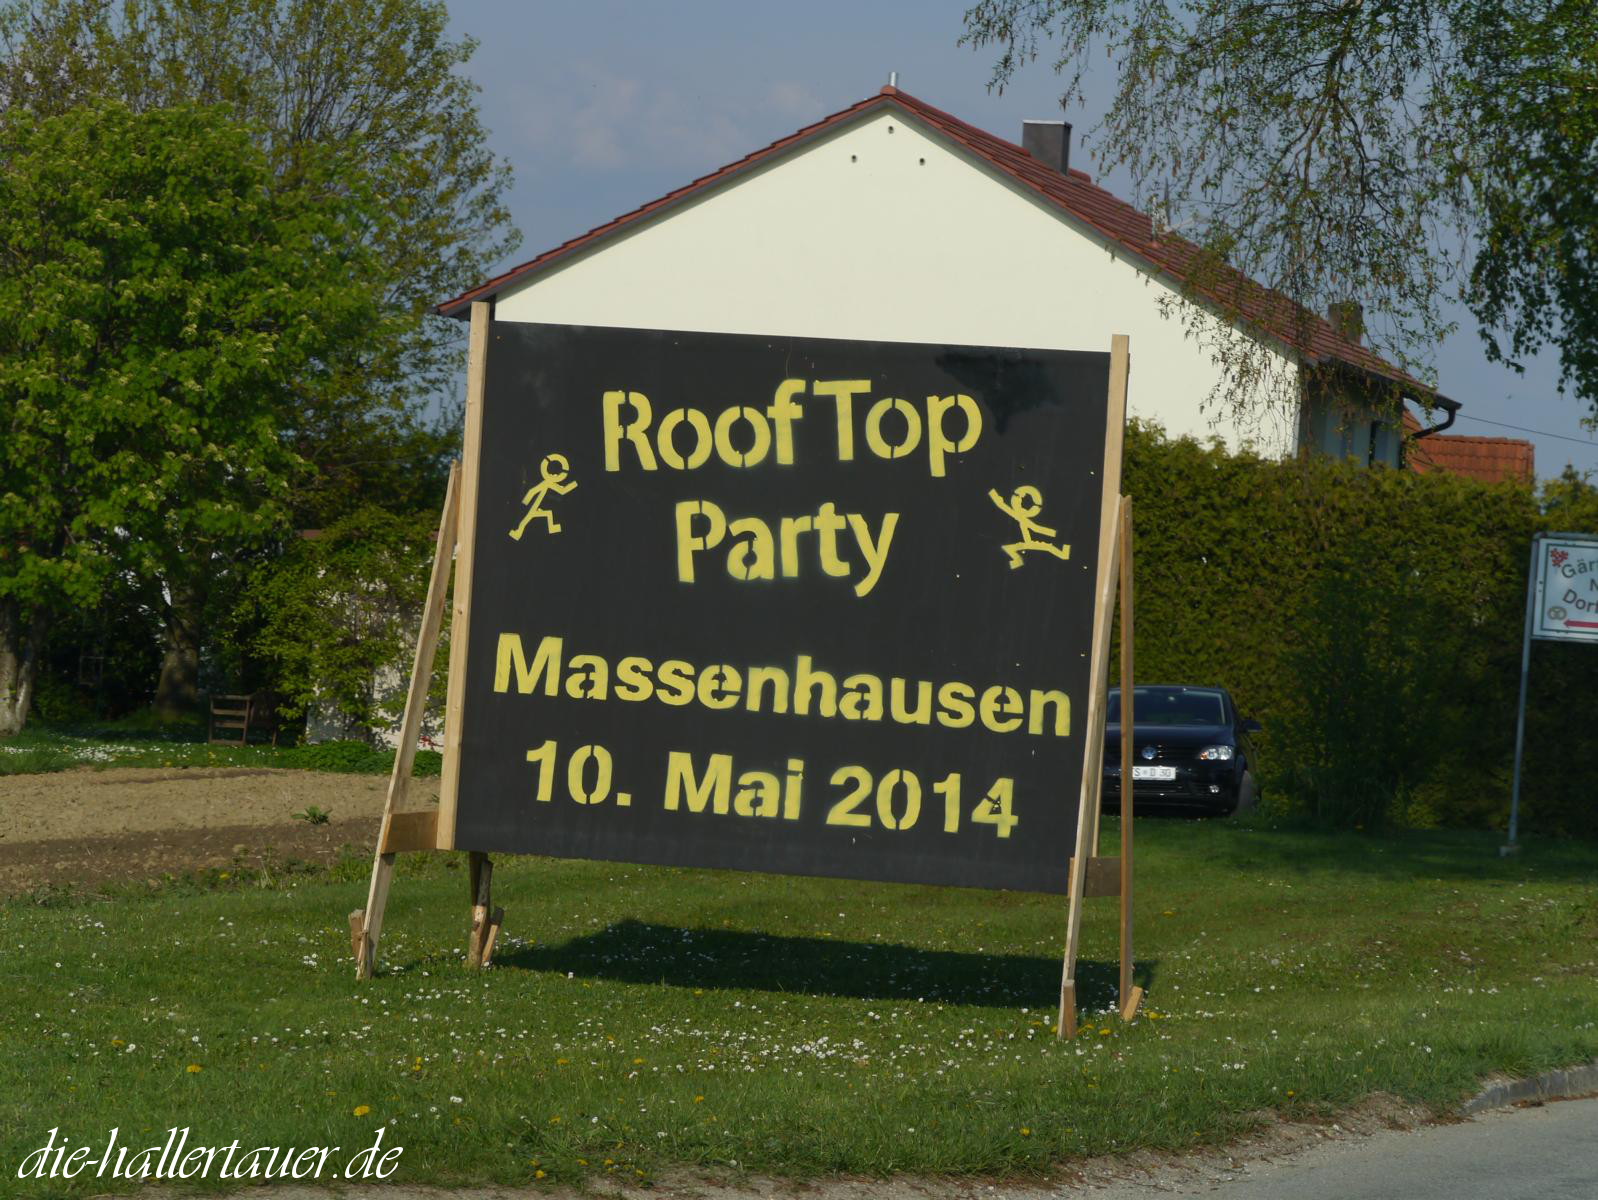 Roof Top Party Massenhausen